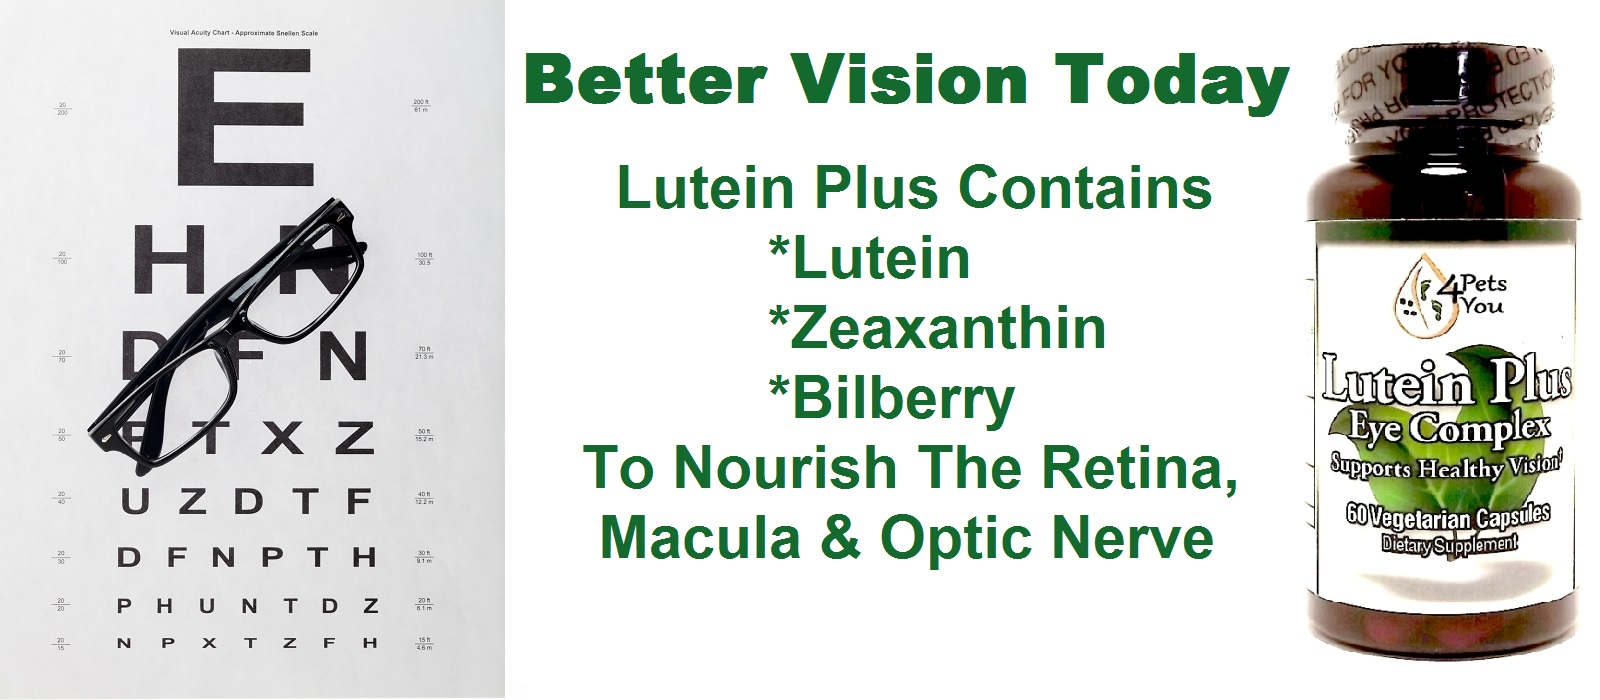 Lutein Plus Eye Complex